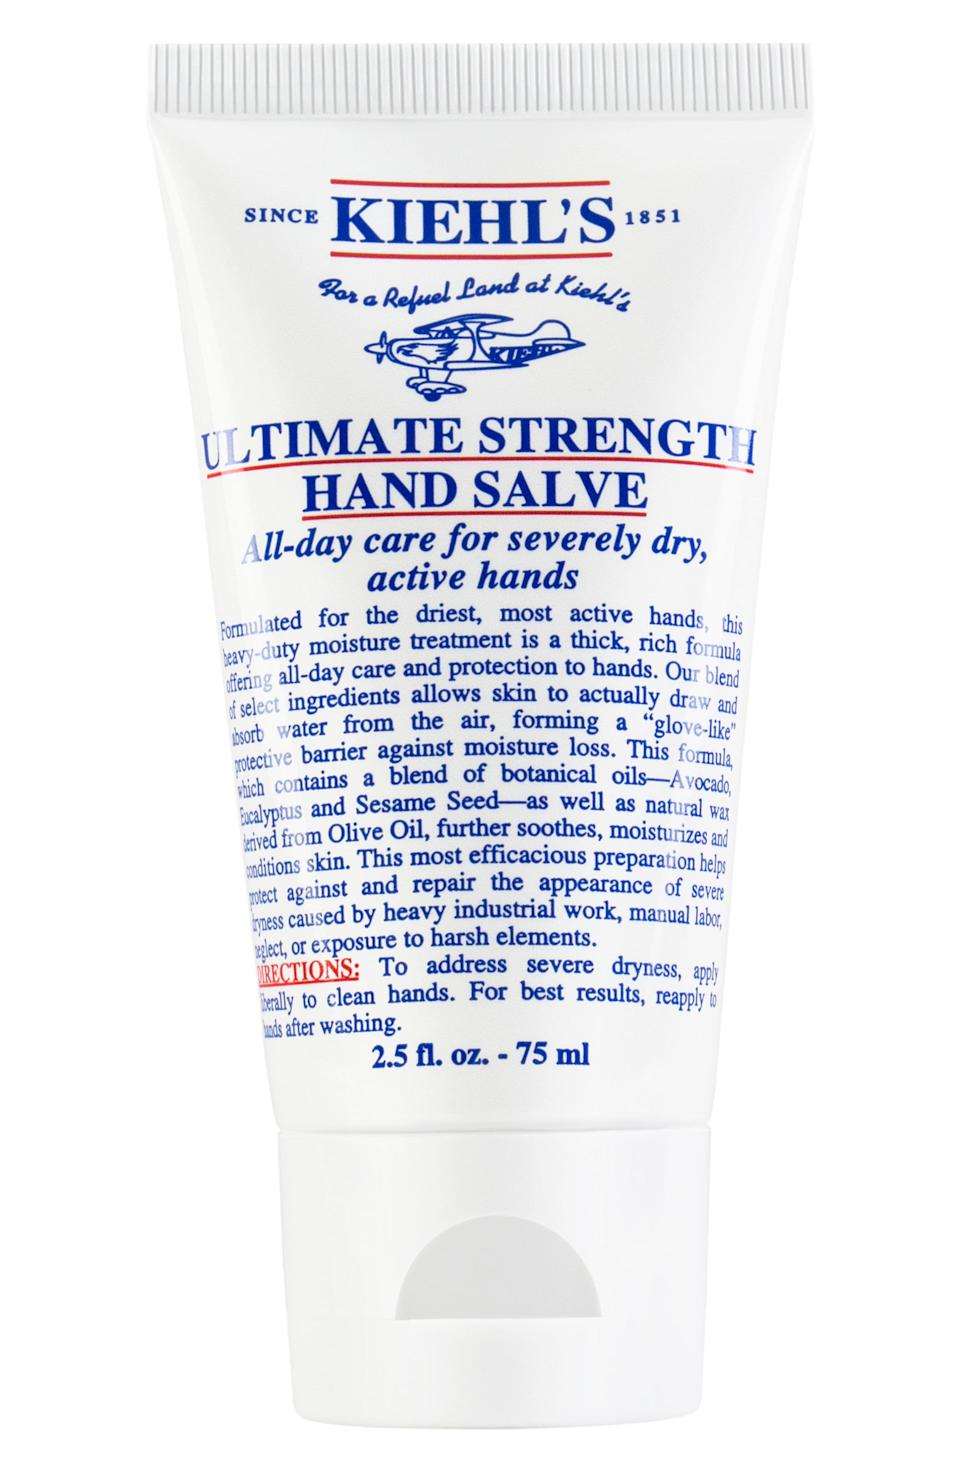 """<p><strong>KIEHL'S SINCE 1851</strong></p><p>nordstrom.com</p><p><a href=""""https://go.redirectingat.com?id=74968X1596630&url=https%3A%2F%2Fwww.nordstrom.com%2Fs%2Fkiehls-since-1851-ultimate-strength-hand-salve%2F5050445&sref=https%3A%2F%2Fwww.cosmopolitan.com%2Fstyle-beauty%2Ffashion%2Fg33597174%2Fnordstrom-anniversary-sale-2020%2F"""" rel=""""nofollow noopener"""" target=""""_blank"""" data-ylk=""""slk:Shop Now"""" class=""""link rapid-noclick-resp"""">Shop Now</a></p><p>I'm sure you probably have hand sanitizer on deck. But, trust me, you also need this skin-saving moisturizer.</p><p><strong><del>$16</del><br>$10.50</strong></p>"""